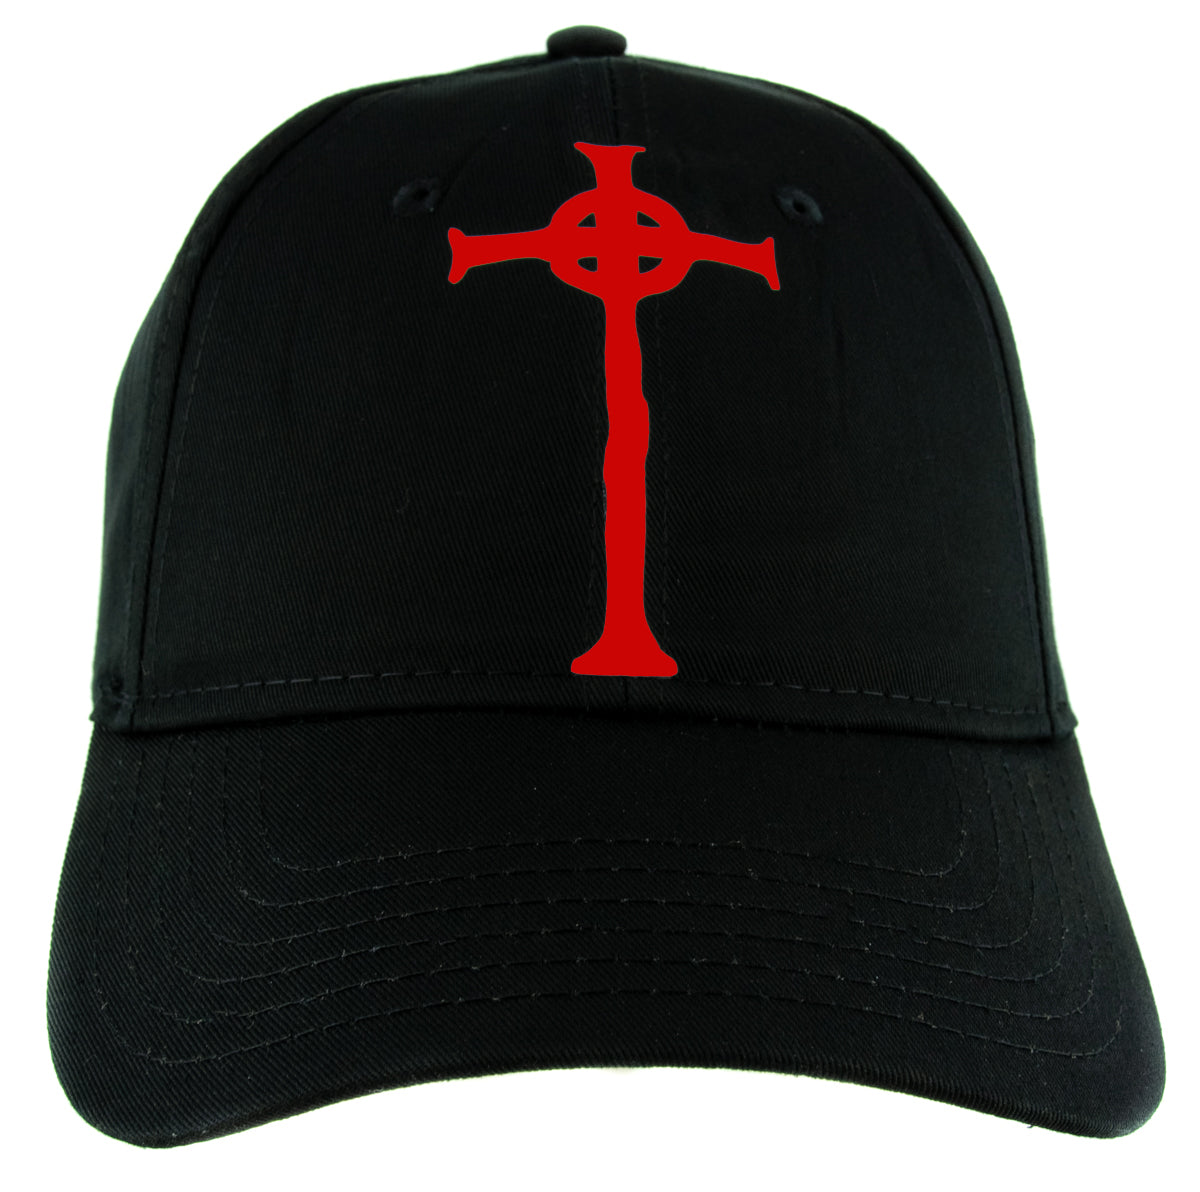 Red Vampire Hunter D Cross Tombstone Hat Baseball Cap Anime Alternative Clothing Snapback